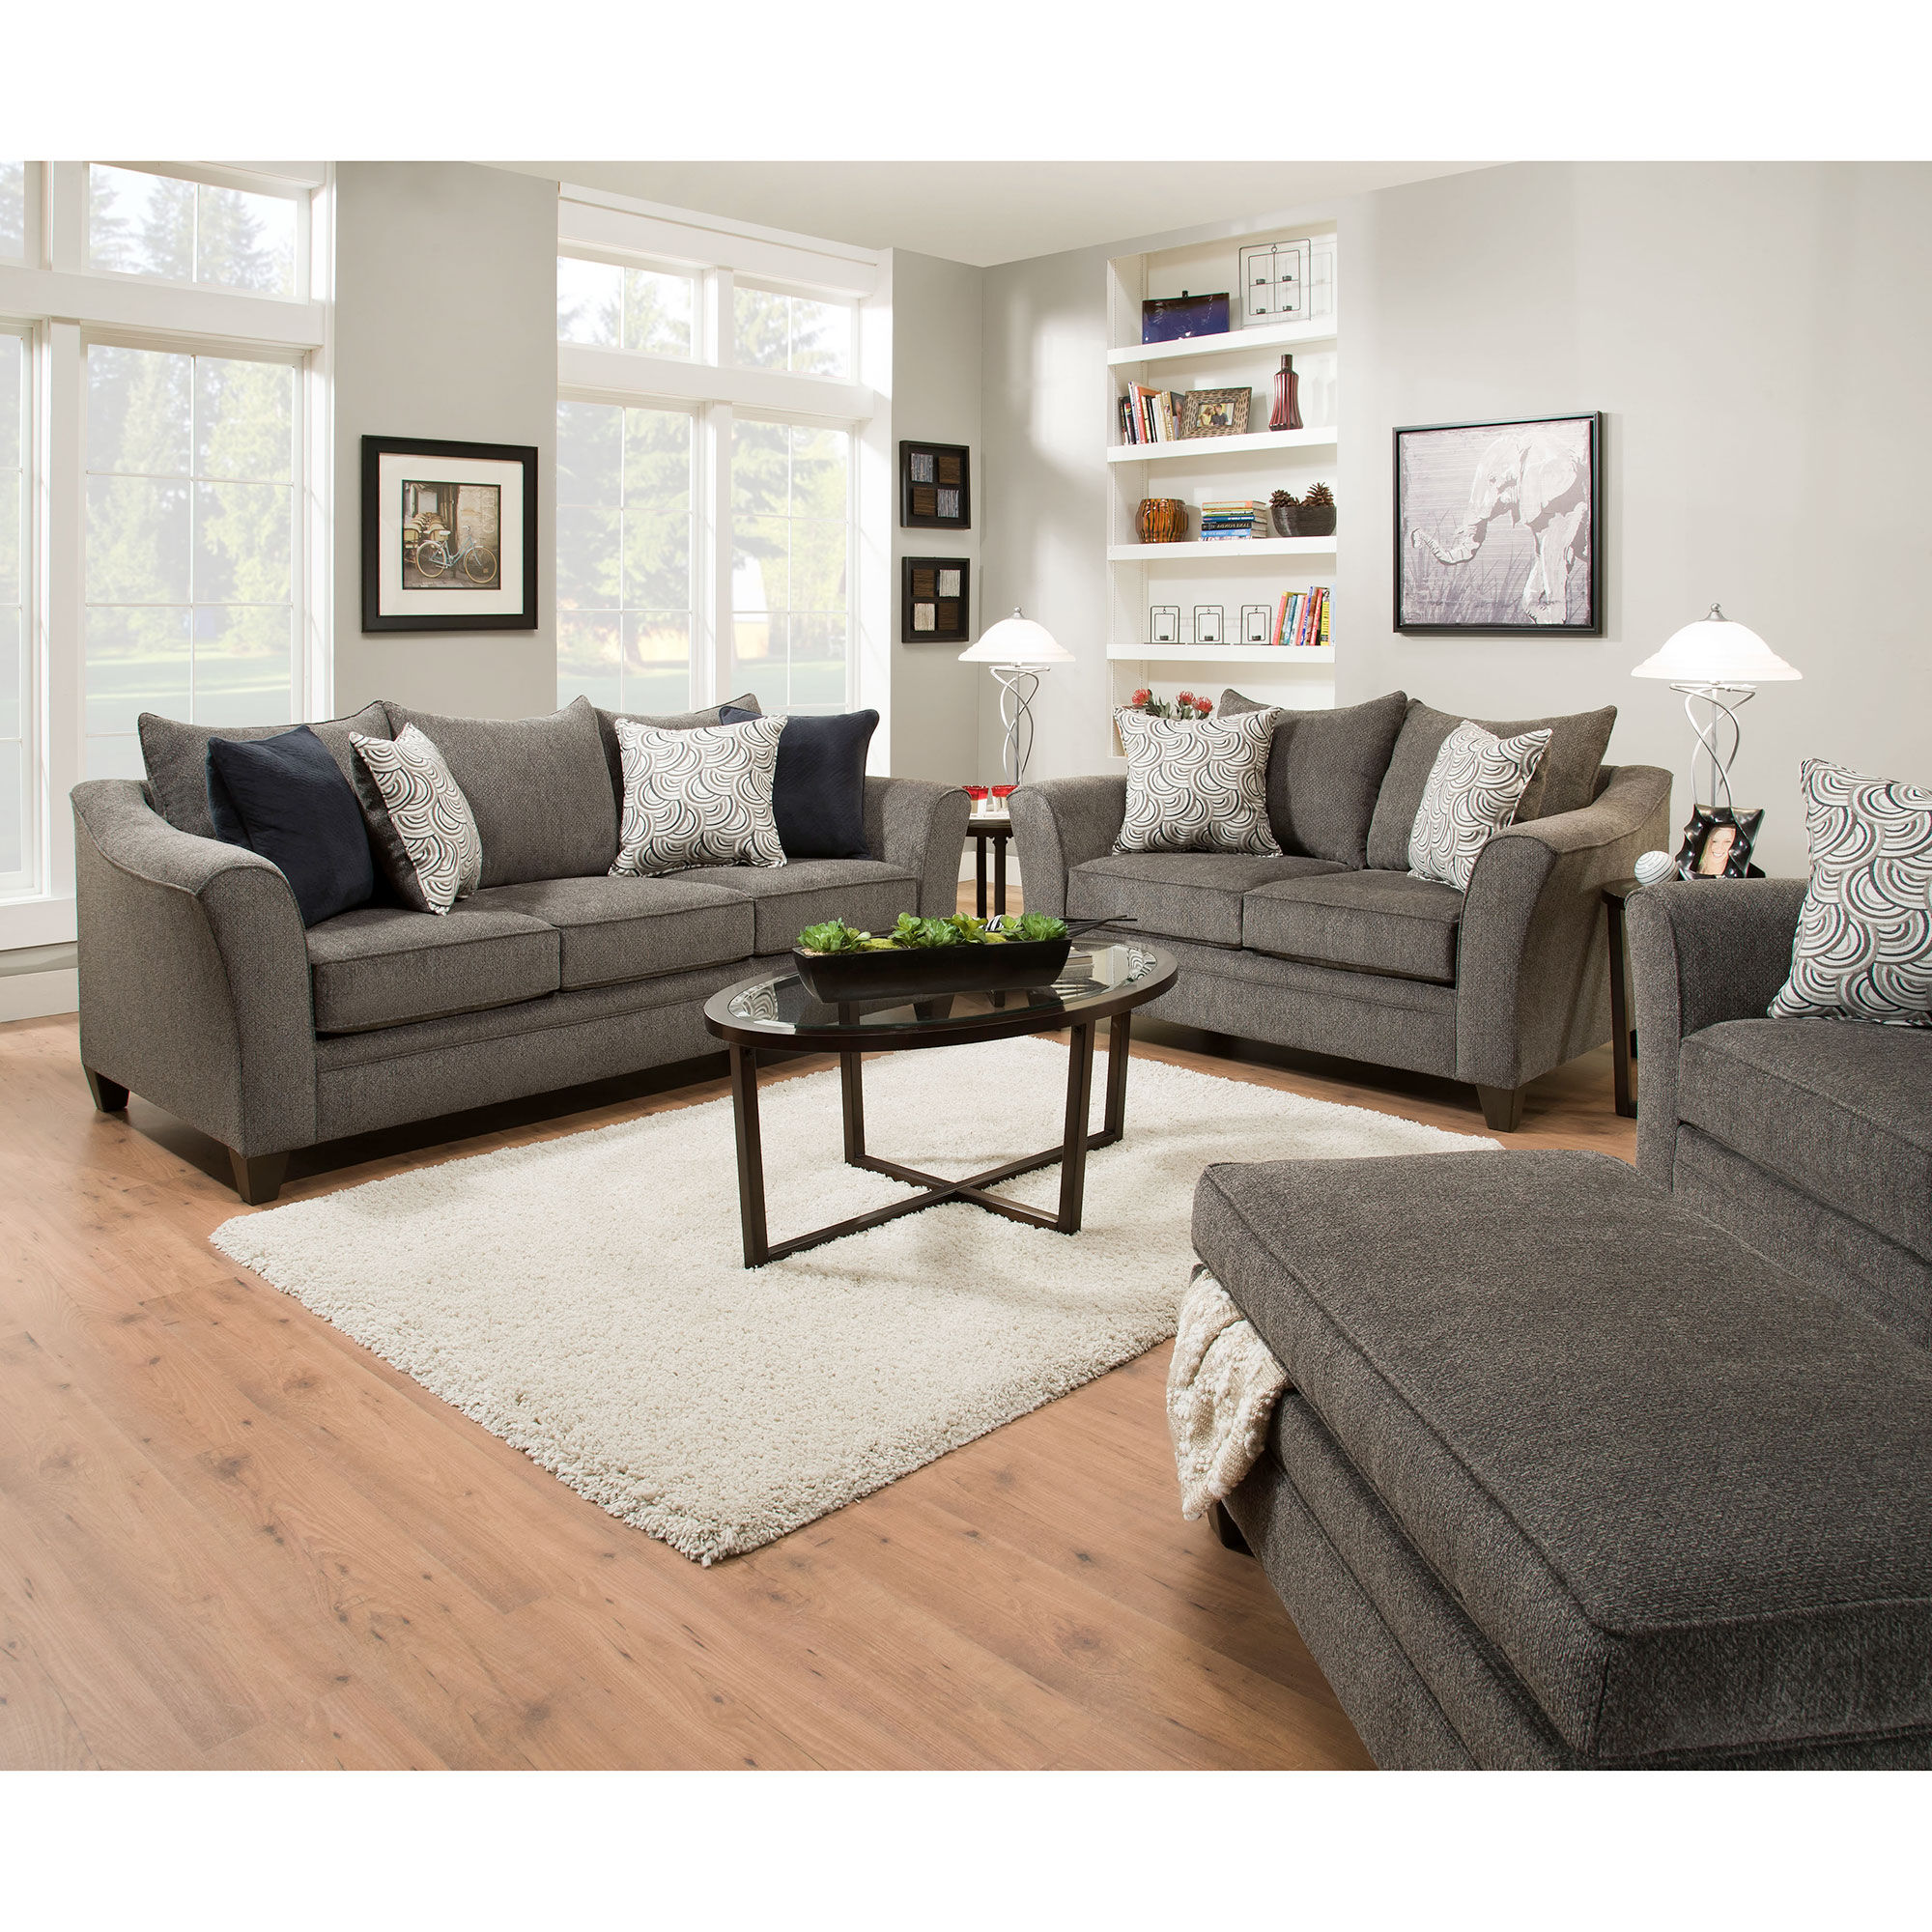 woodhaven living room furniture end table for rent to own   aaron's